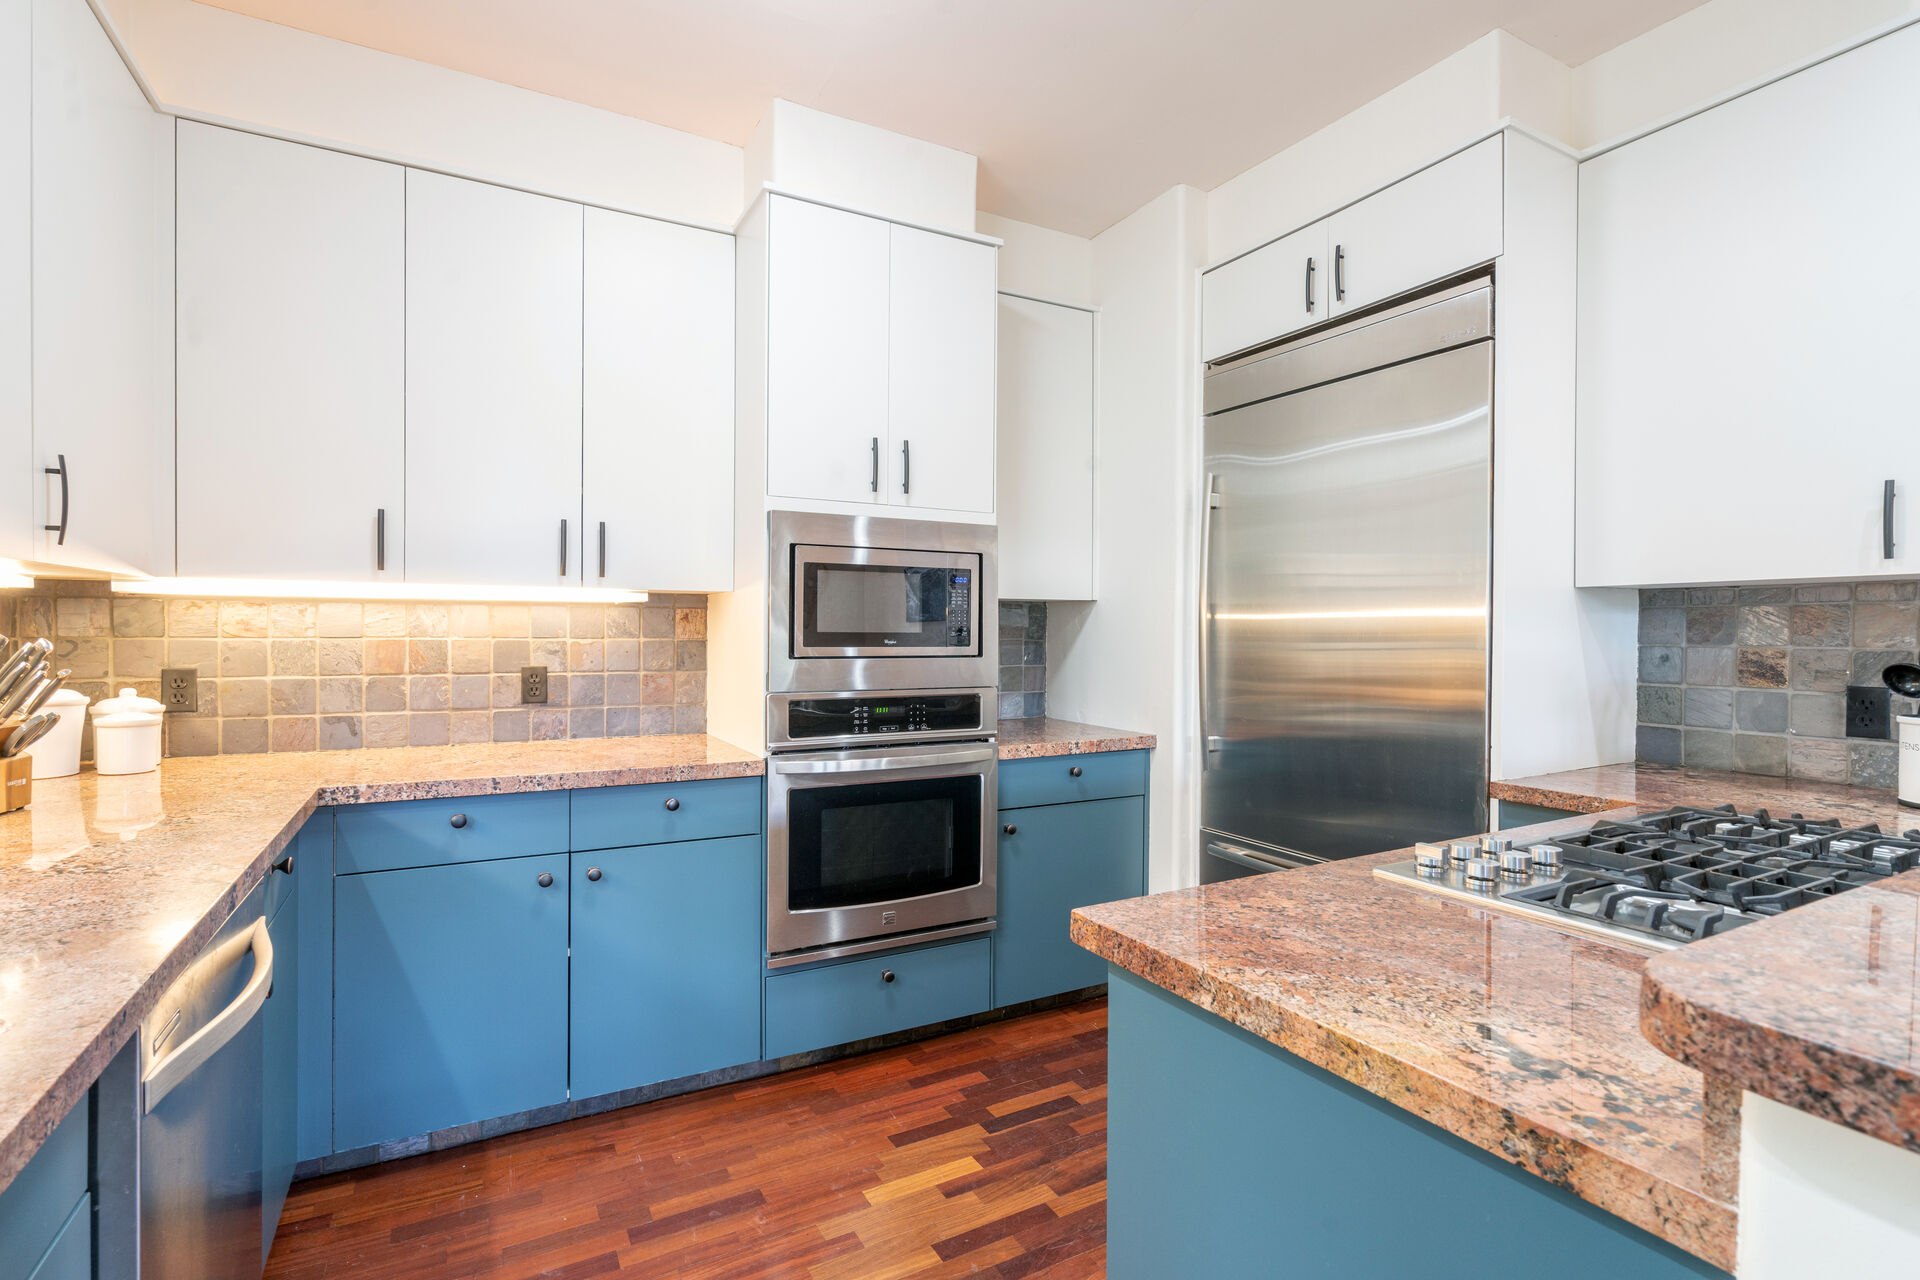 Kitchen with blue lower and white upper cabinets